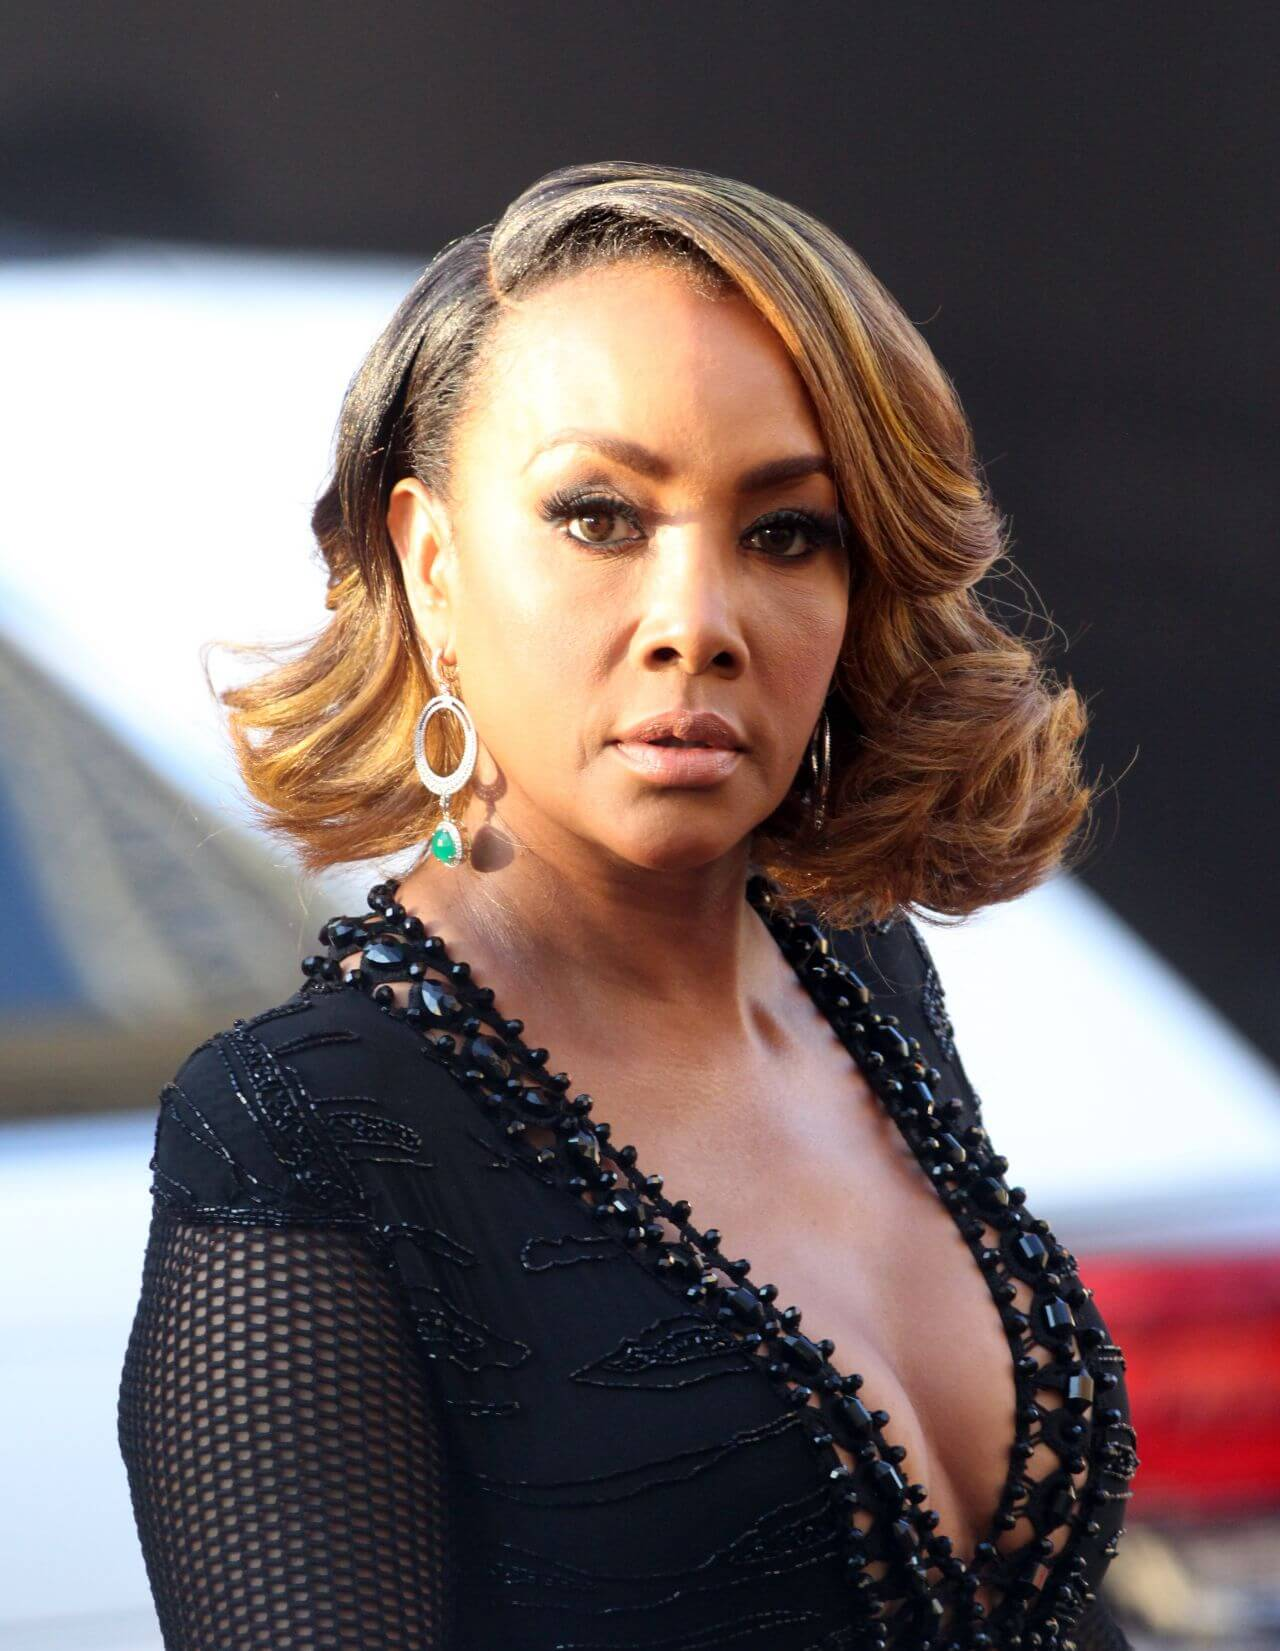 Vivica A. Fox hot side pics